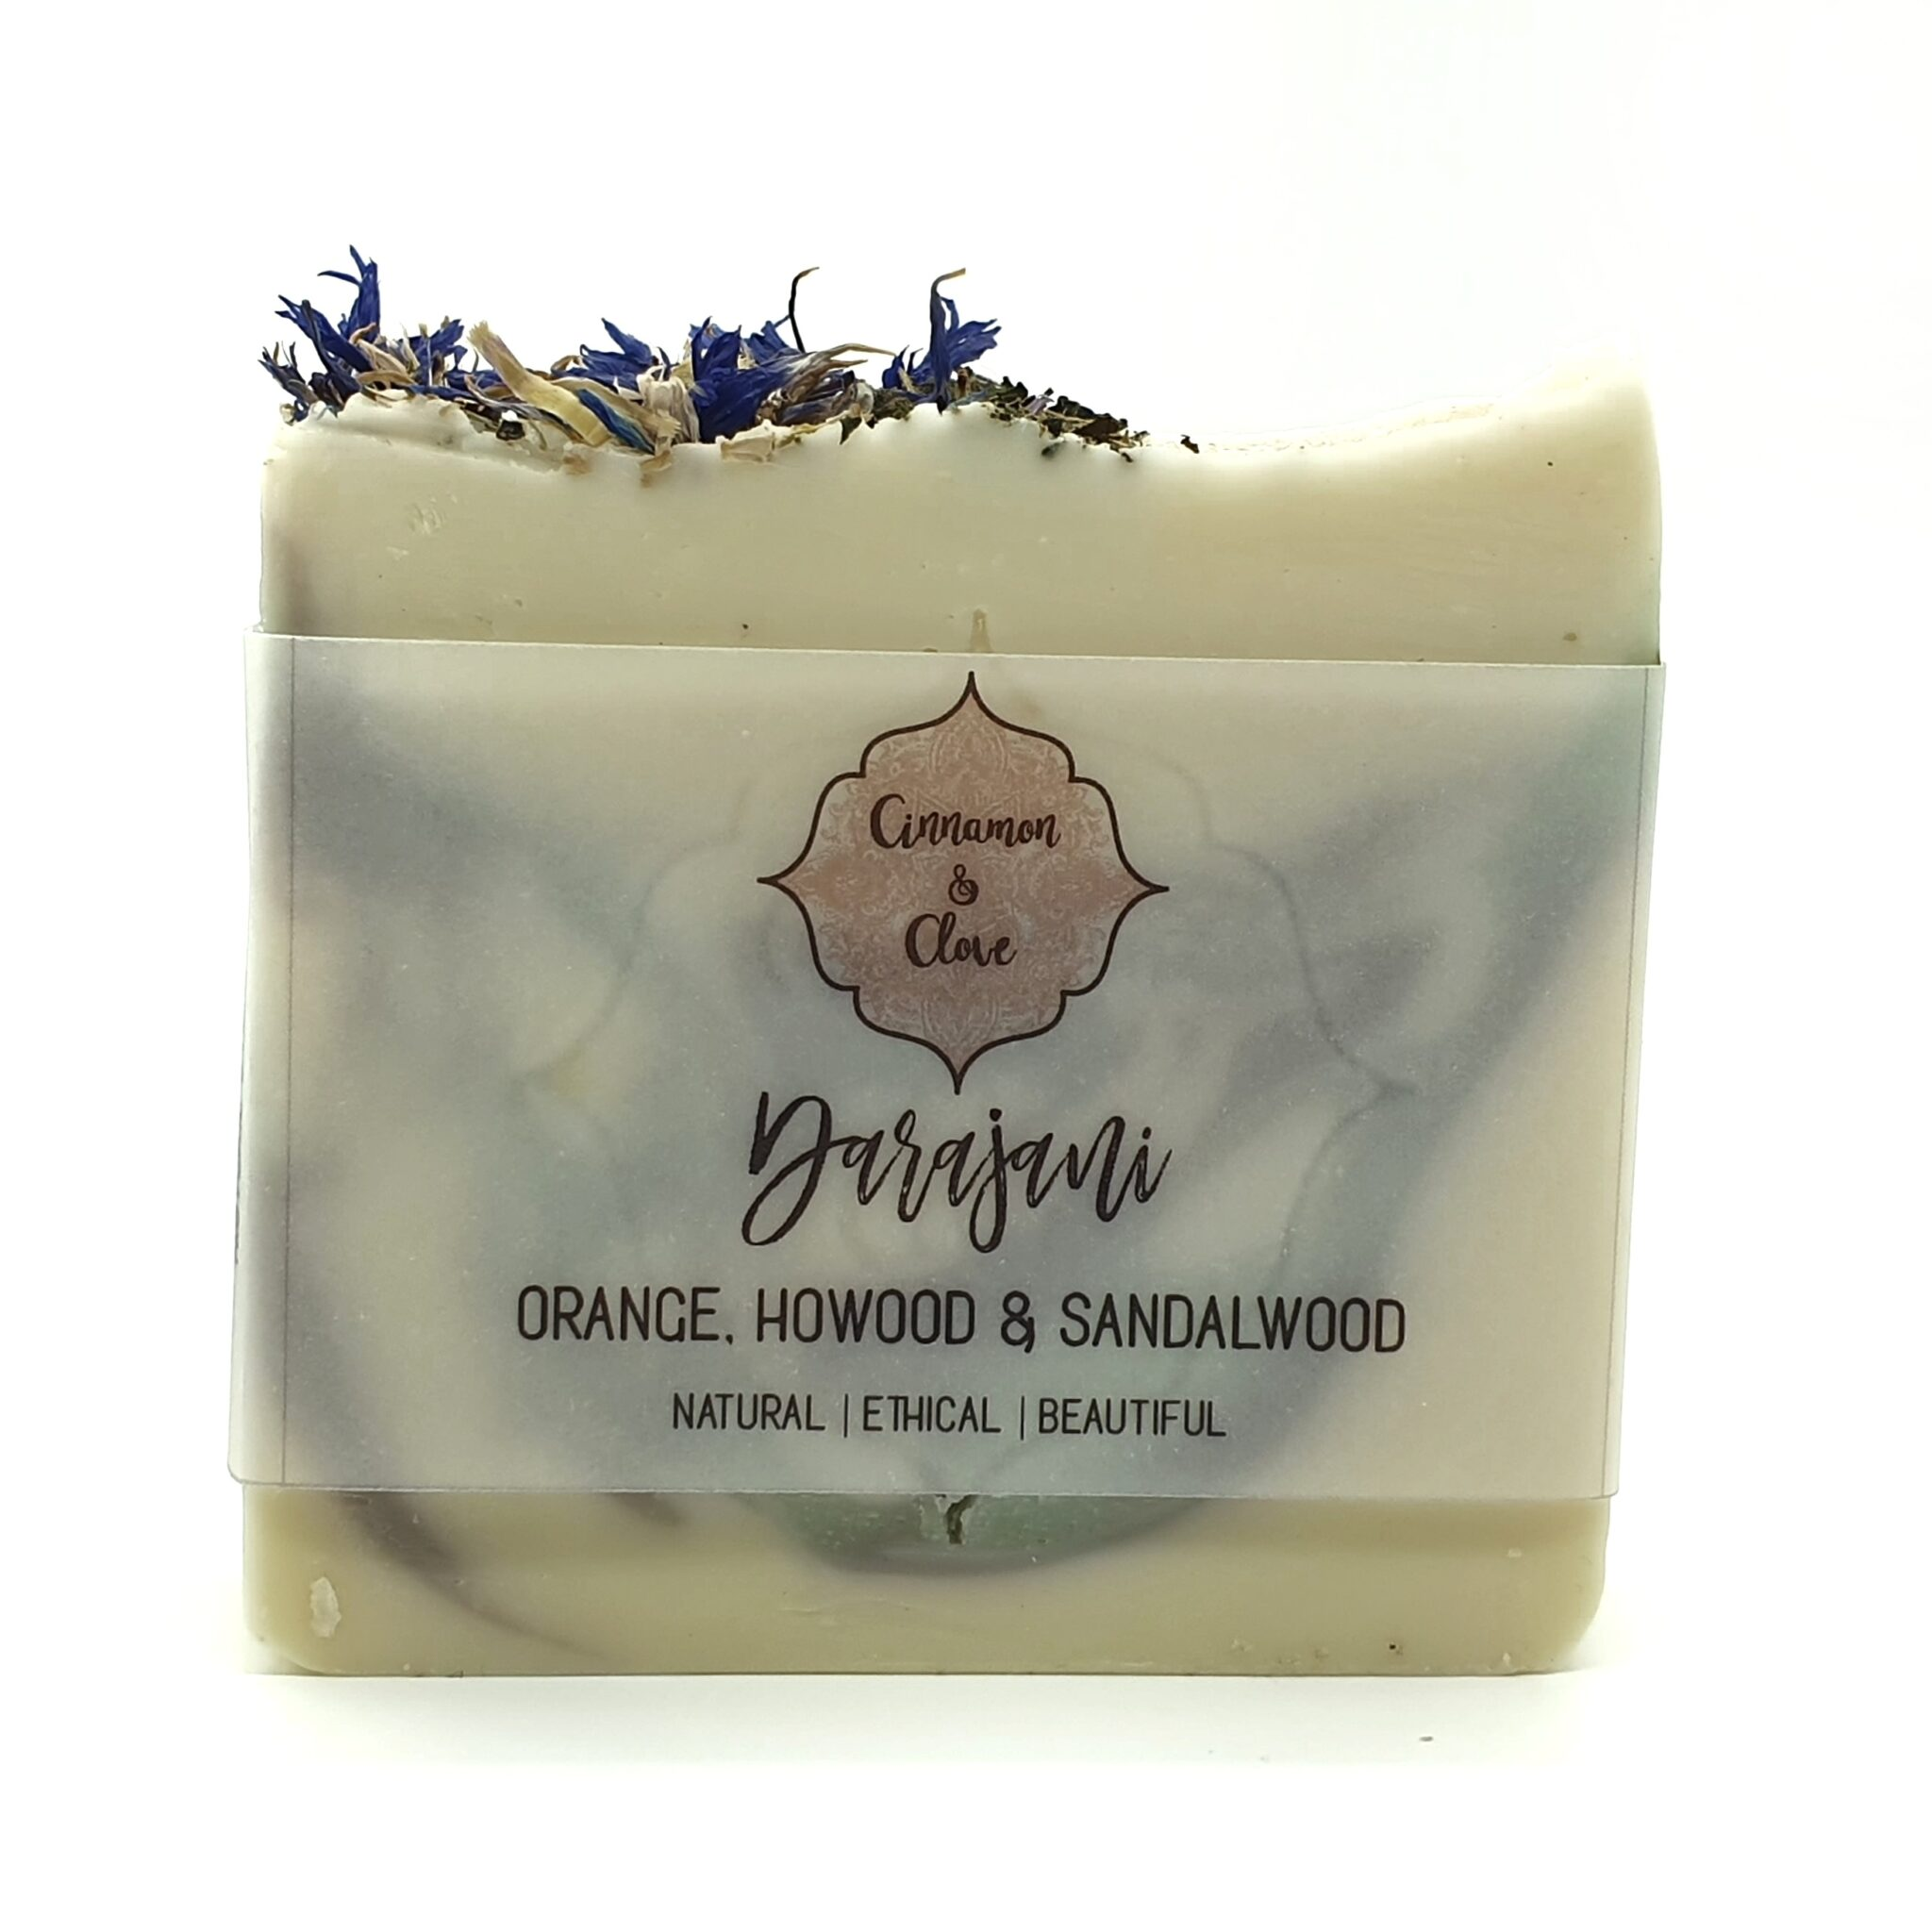 Darajani – Handcrafted All Natural Artisan Soap By Cinnamon And Clove (Prahran)